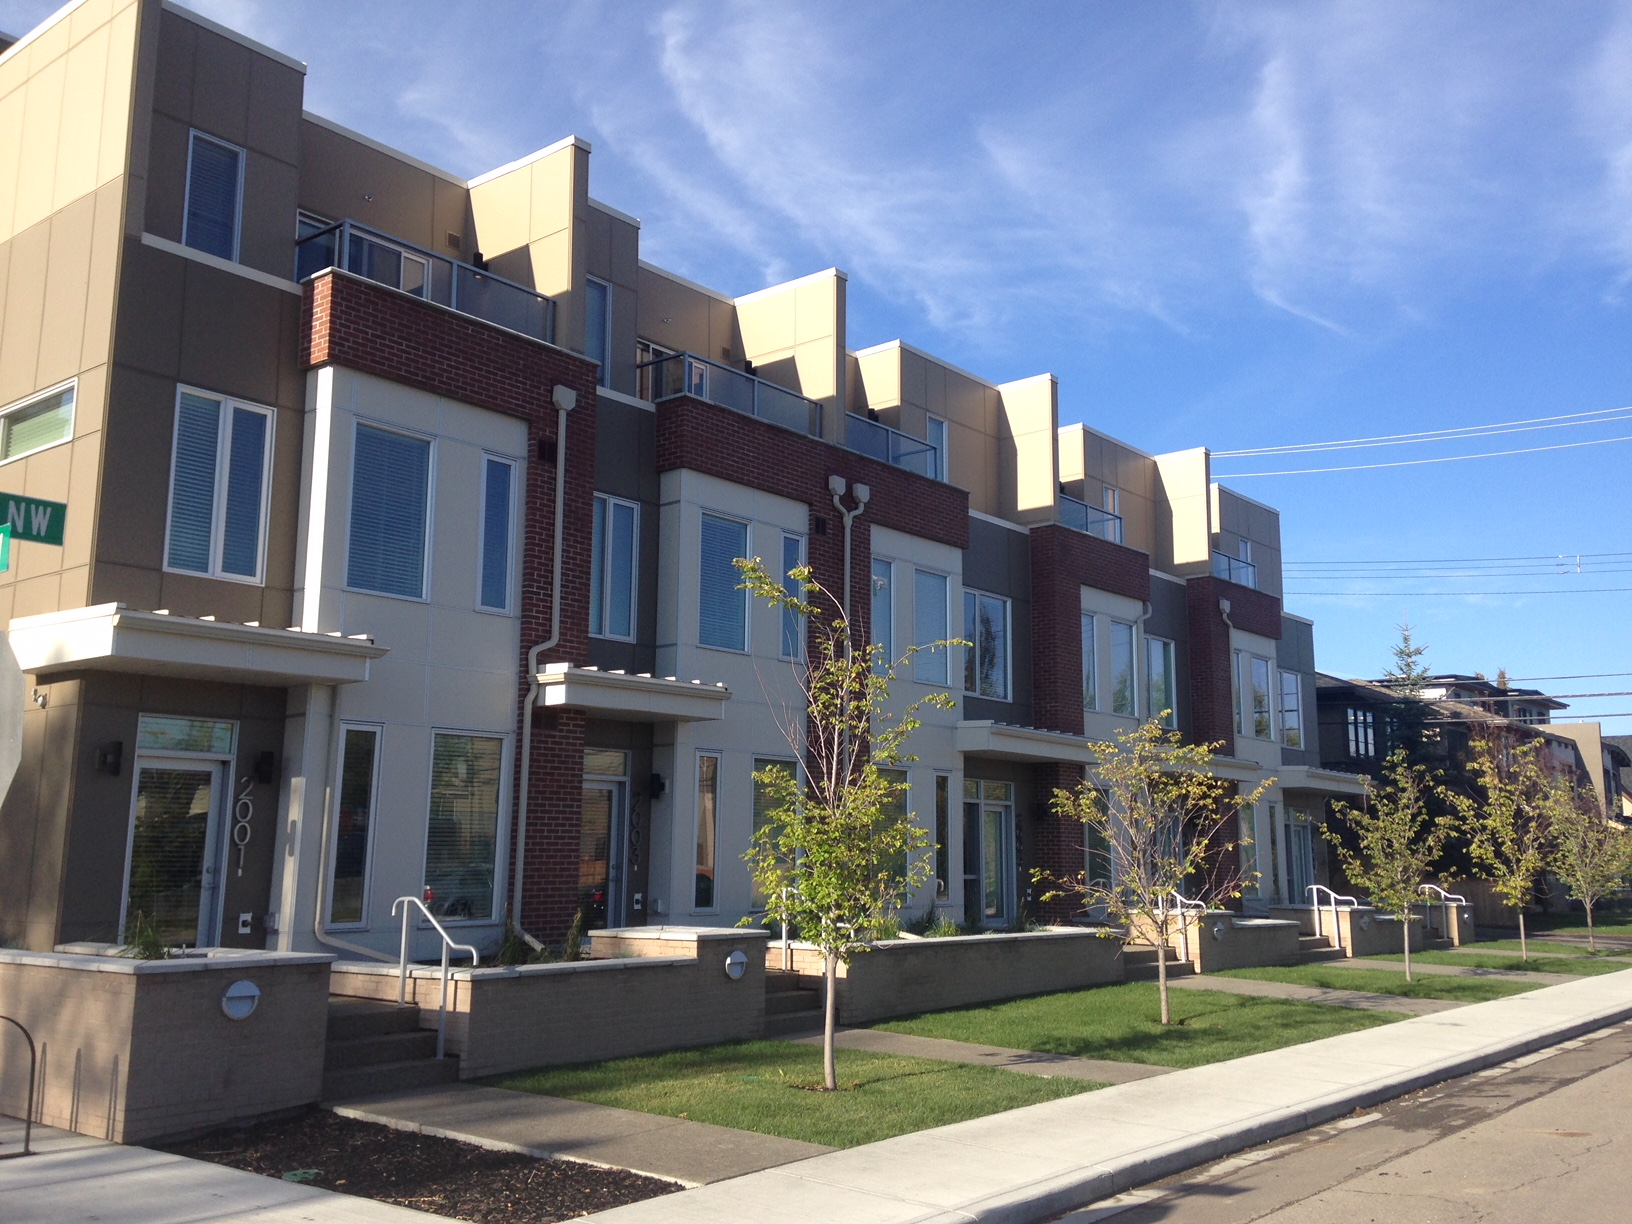 Townhomes at the base of mid and highrise condos create a transition from low to mid density.